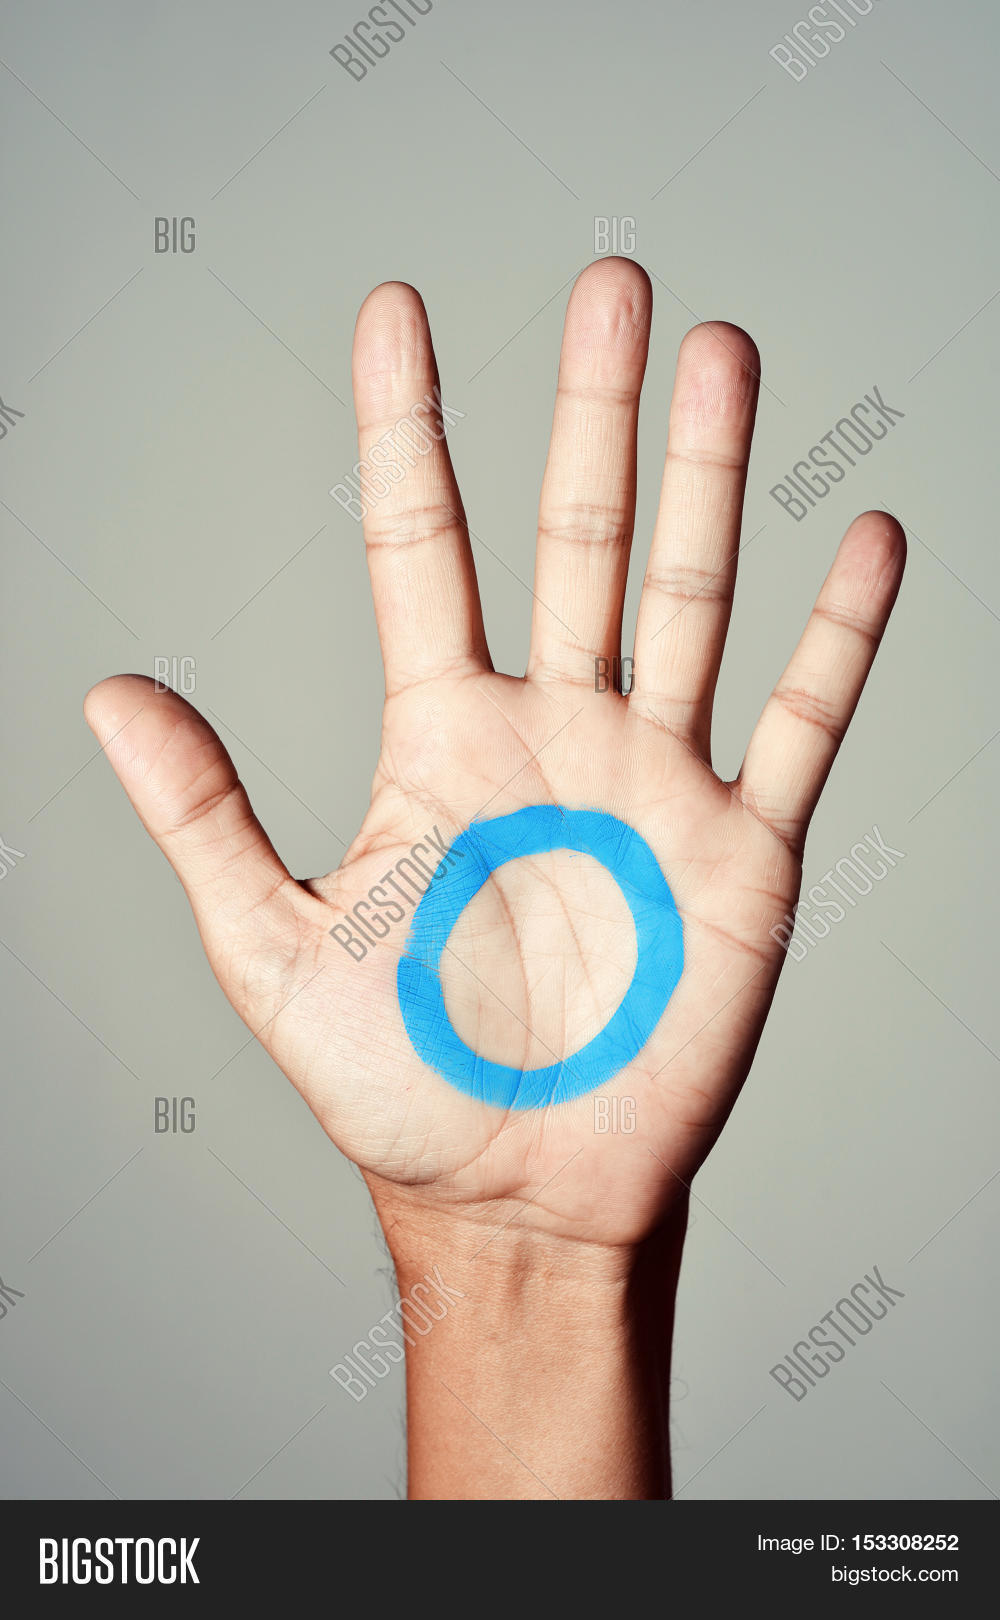 Blue Circle Symbol Image Photo Free Trial Bigstock